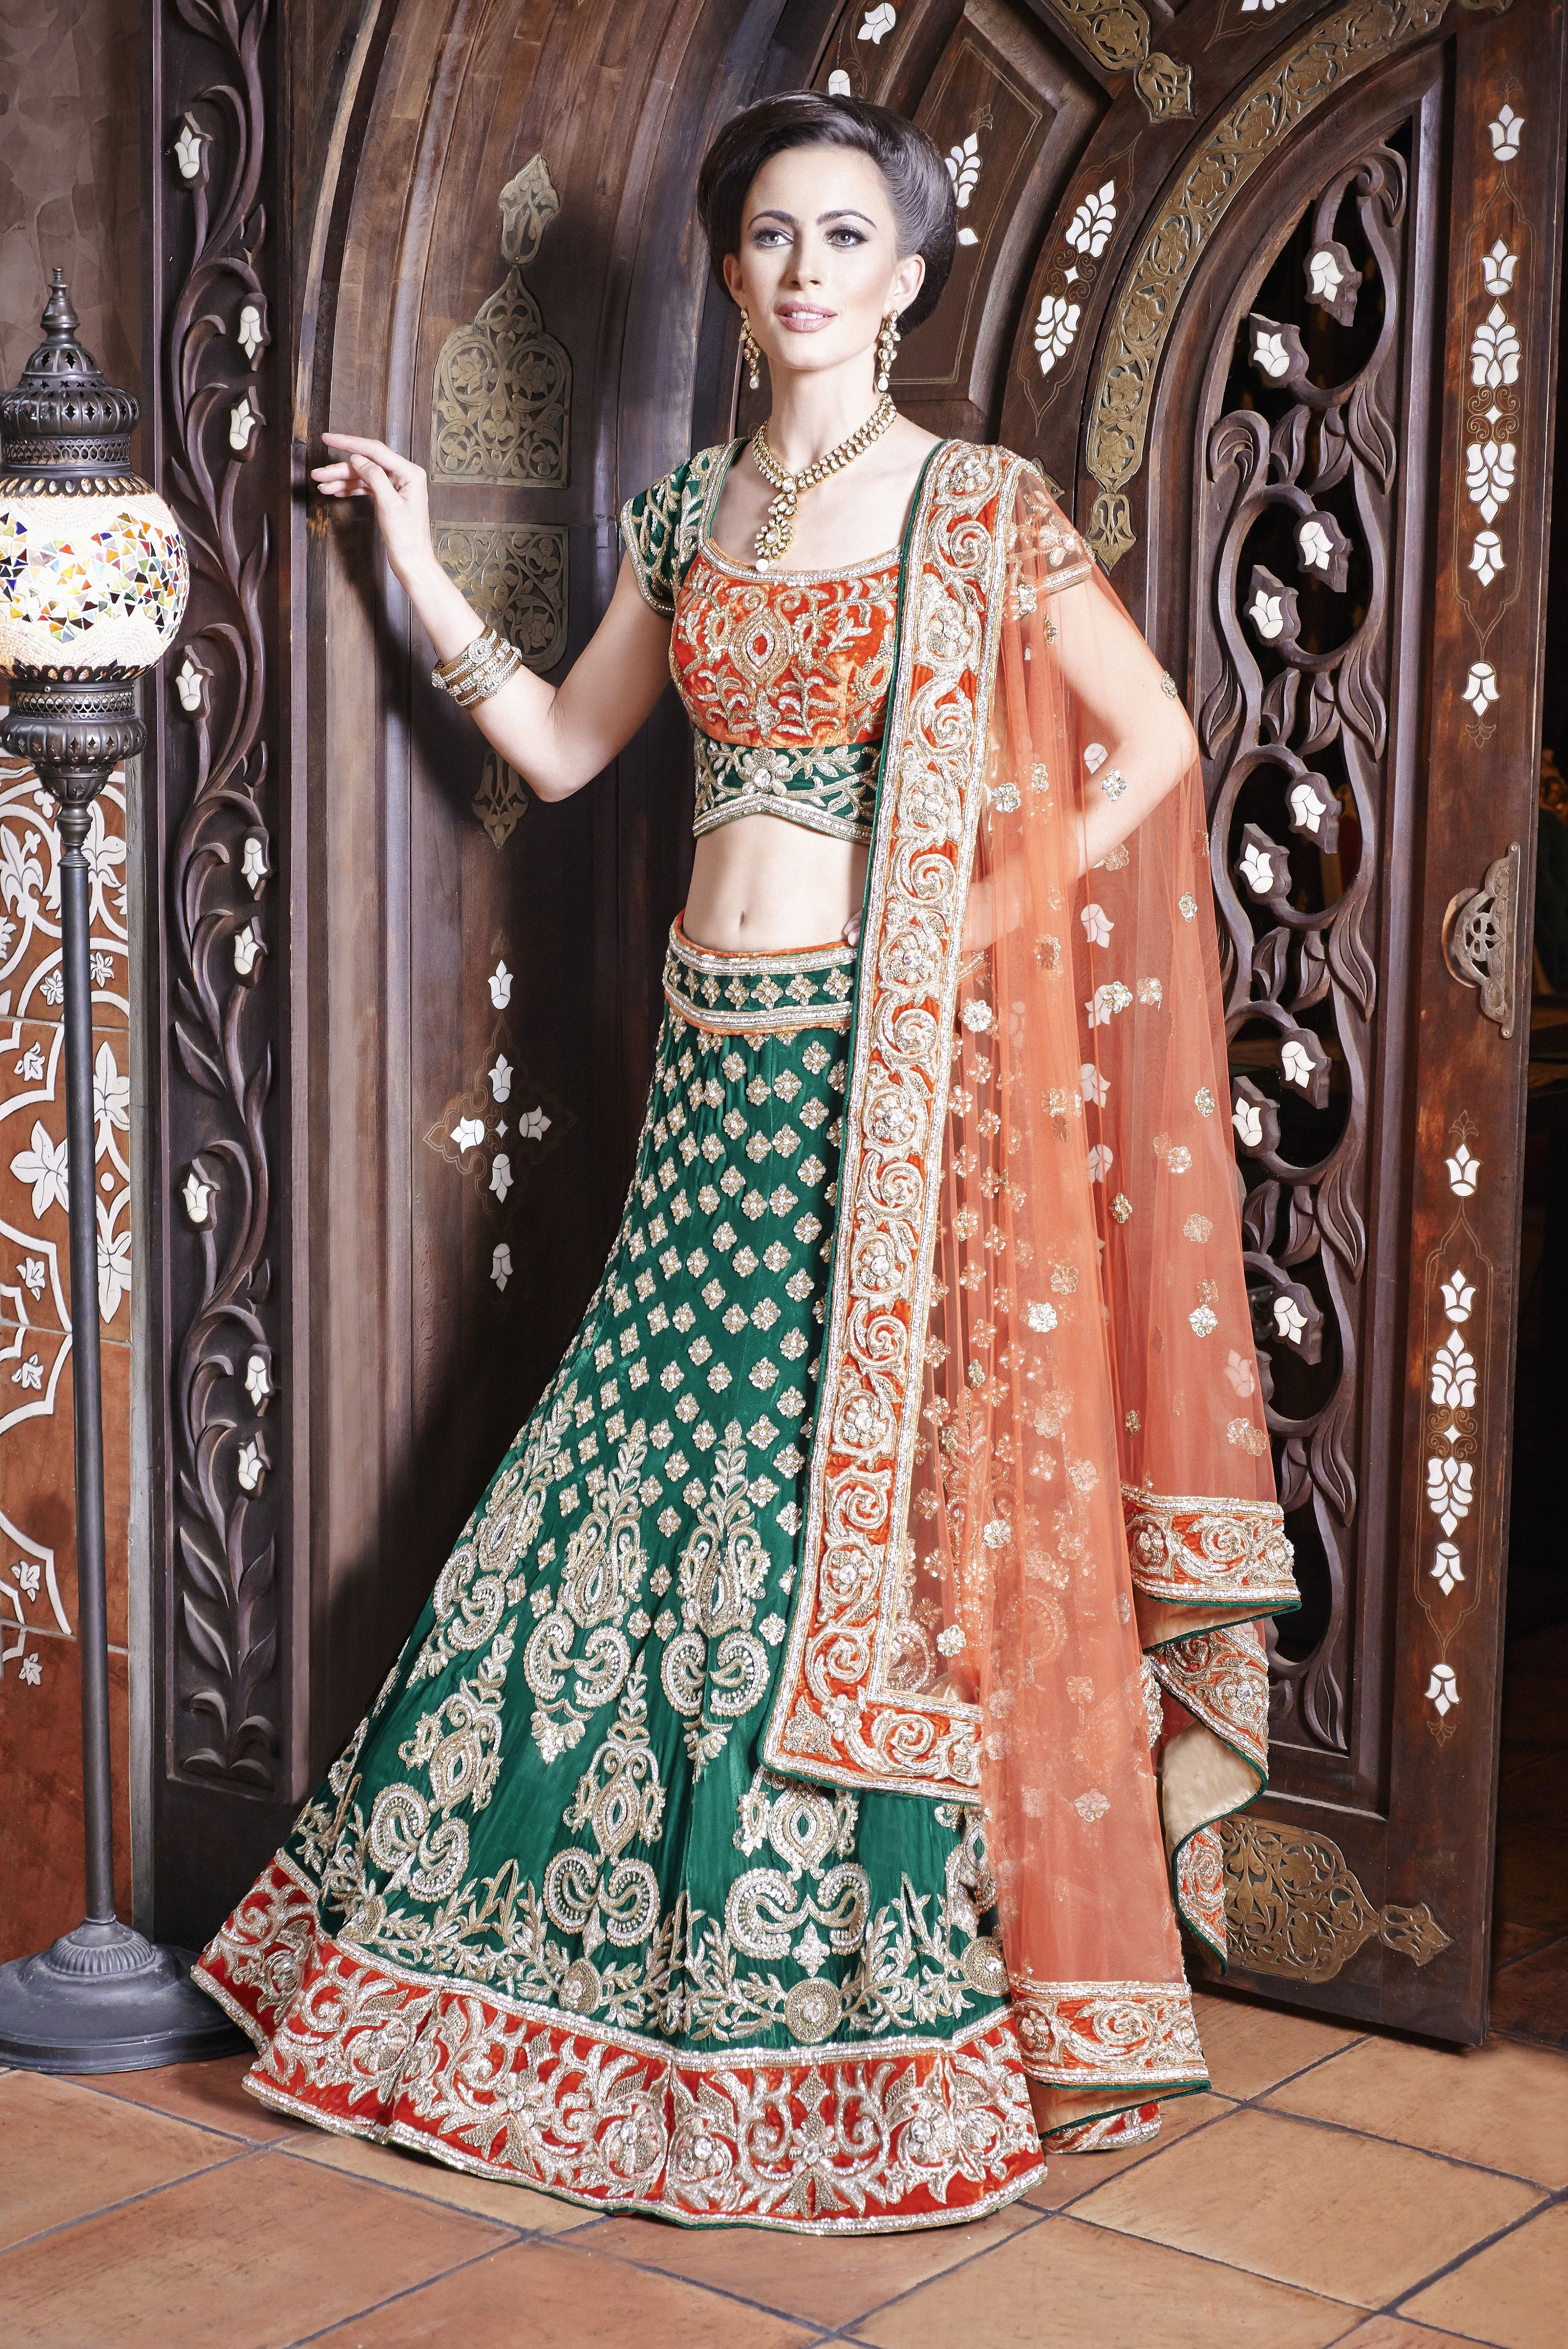 c89f82621c WG08 - emerald green Asian wedding outfit with a contrast orange velvet  blouse with a soft orange net dupatta